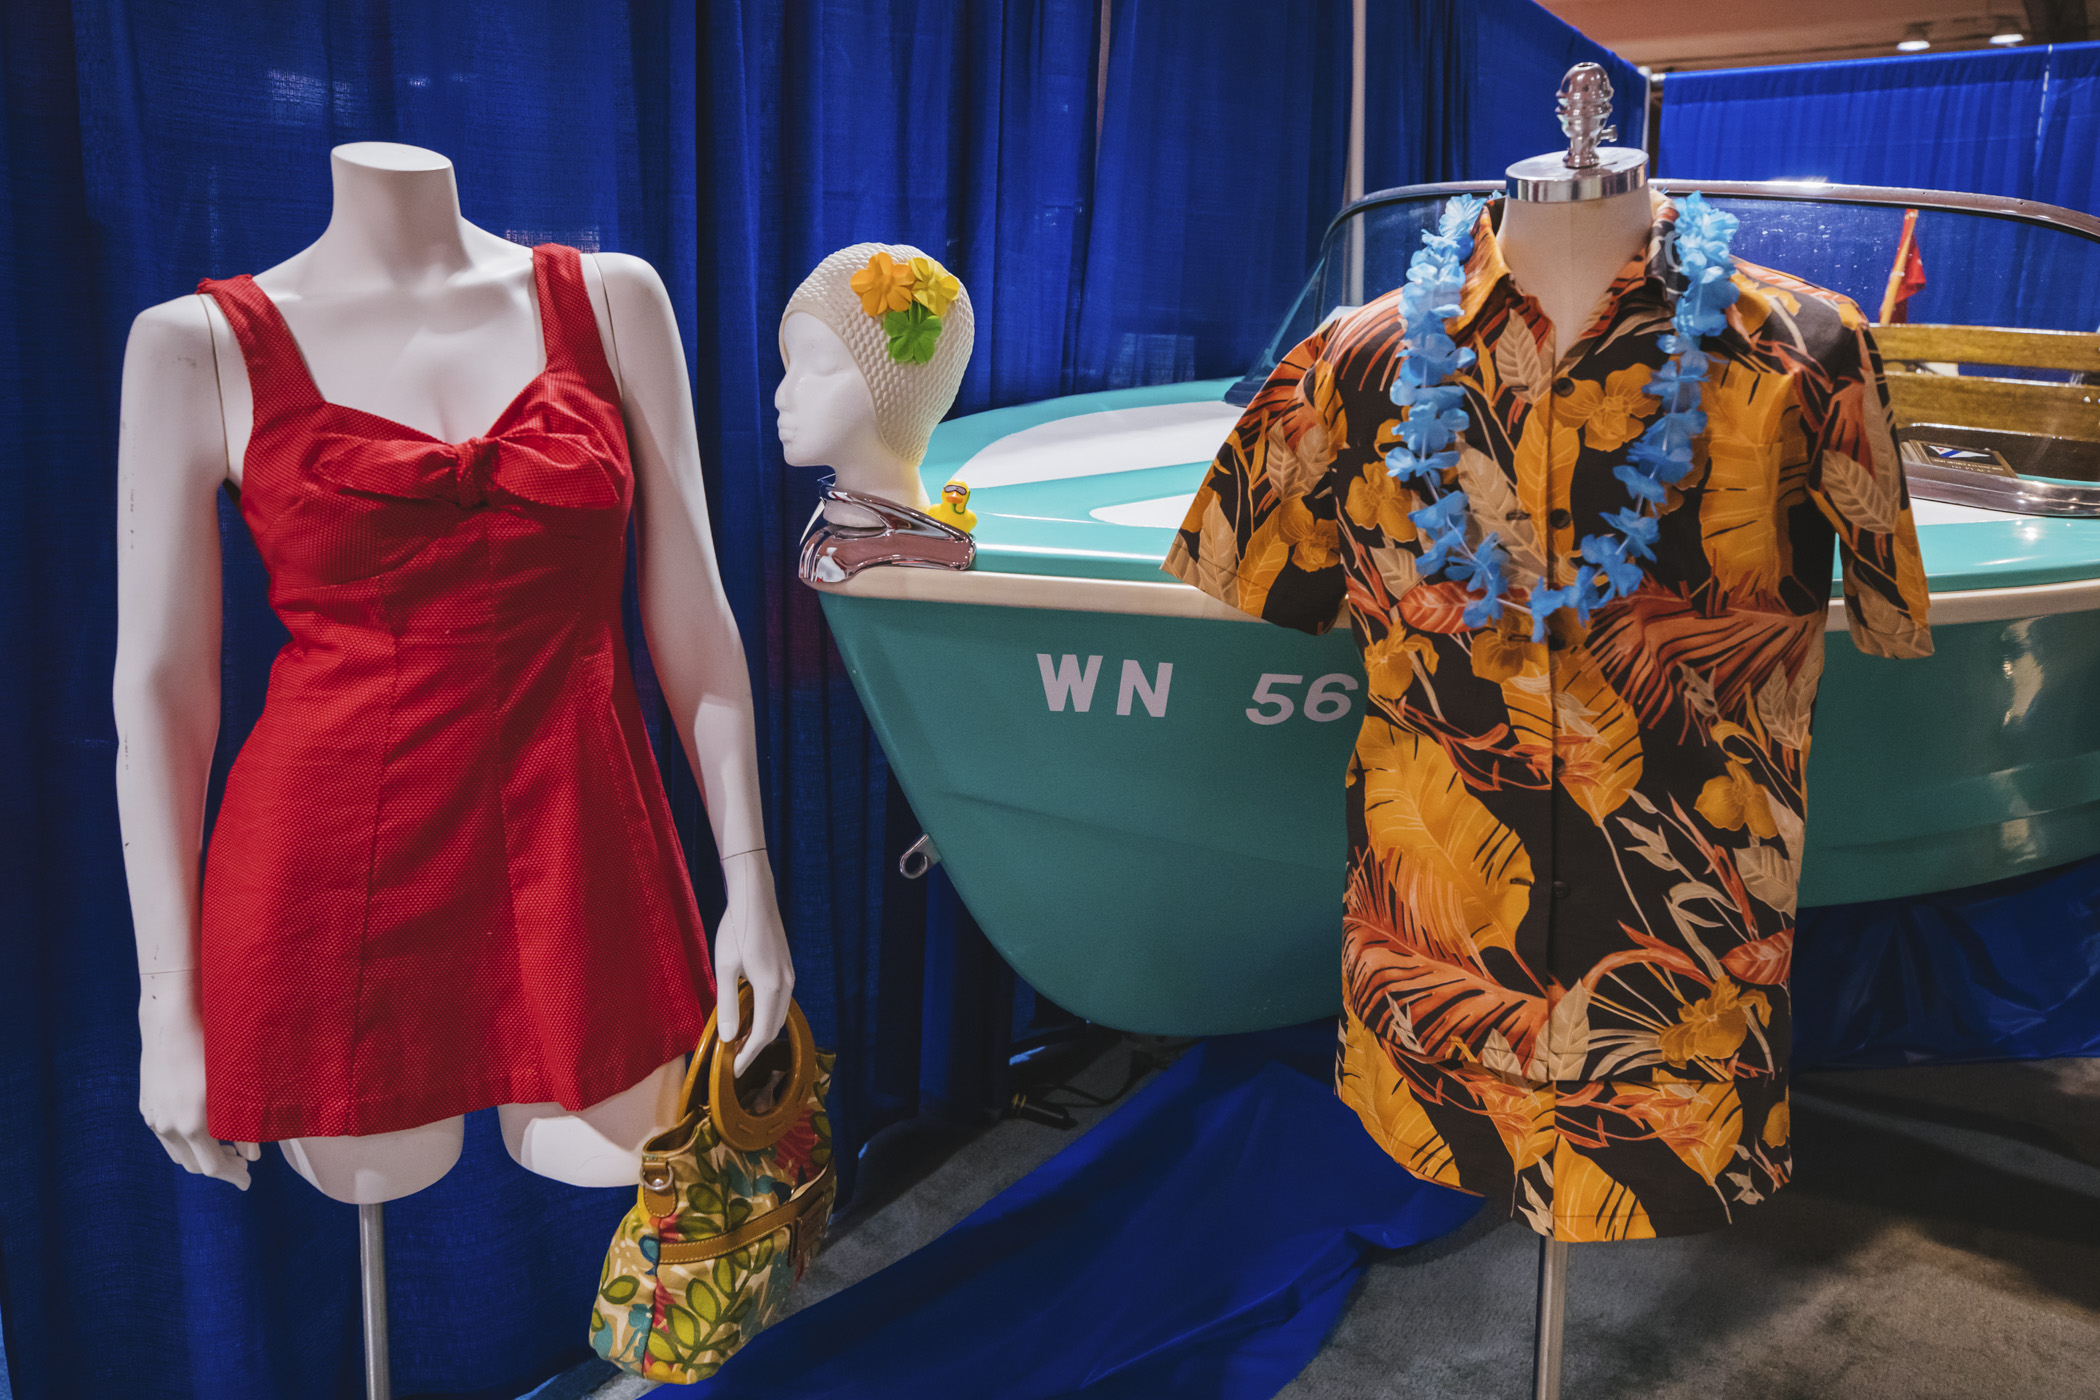 The 1980s shied away from the bikini. Inspired by the aerobic fitness craze one piece suits raised the leg line high, lowered the neck line and scooped the back. Neon color block was popular. (Image: Sunita Martini / Seattle Refined)